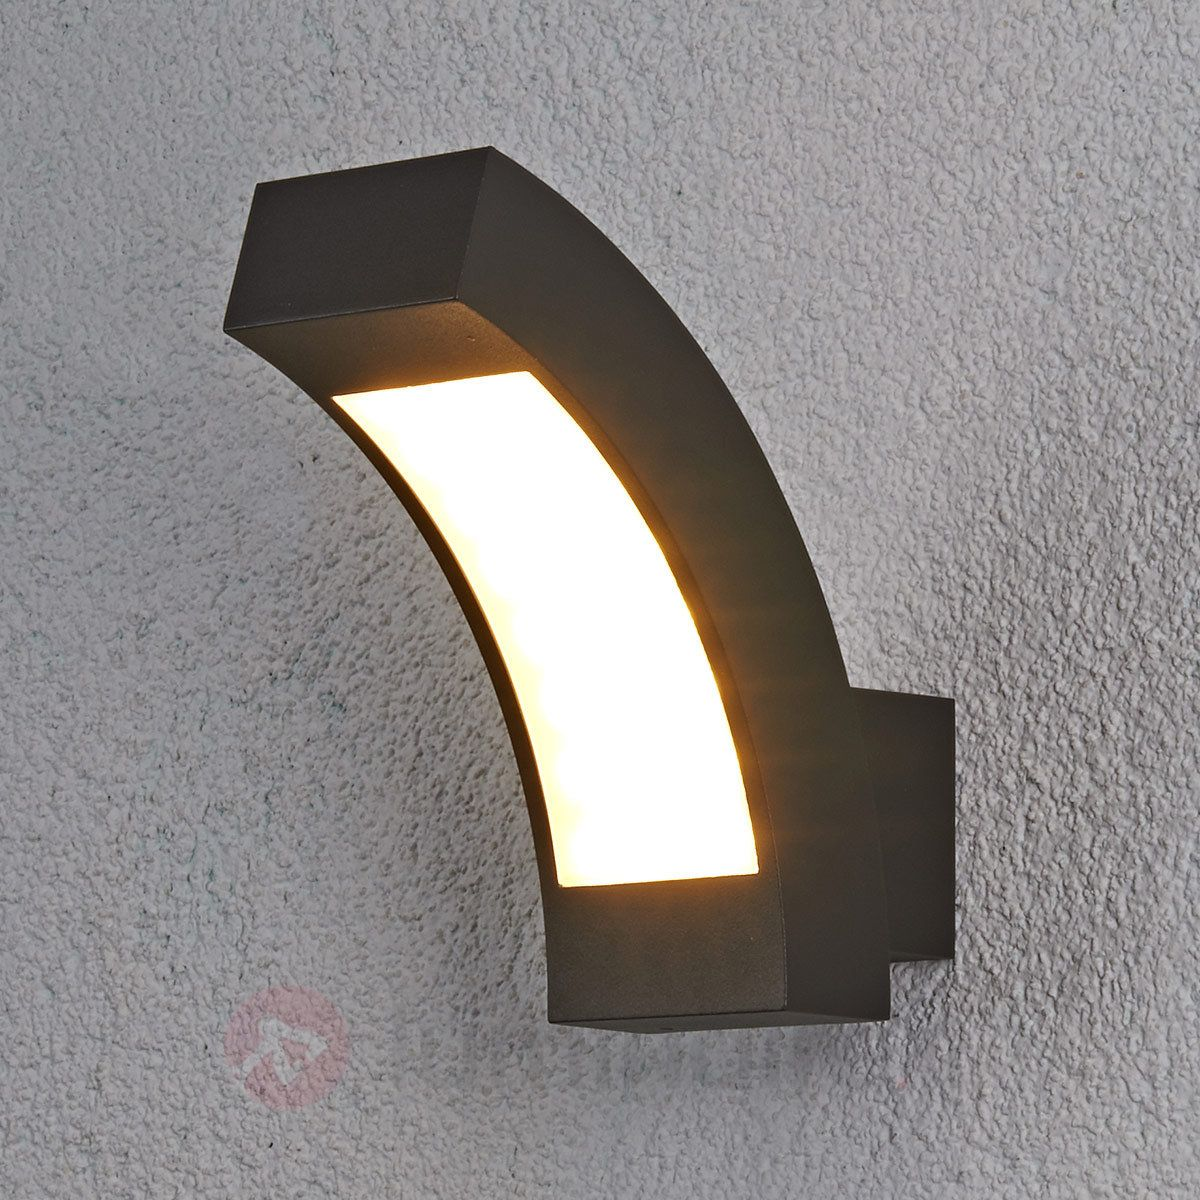 Applique d 39 ext rieur led lennik ip54 for Appliques led exterieur